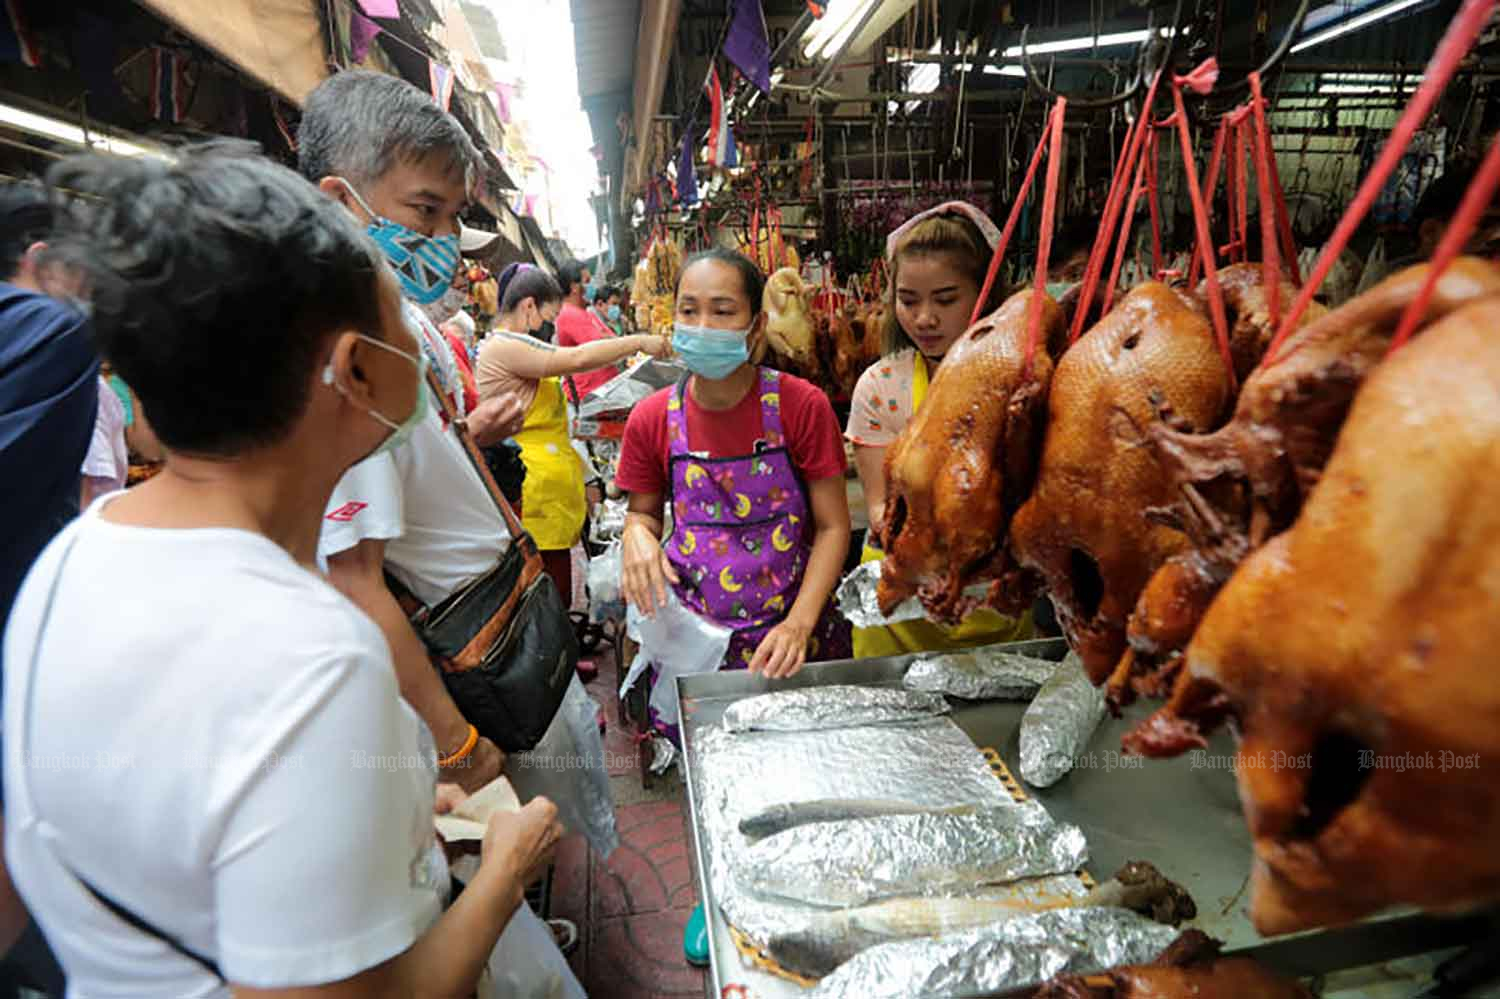 Bangkok's Chinatown was busy on Wednesday as people bought food to prepare offerings for the Chinese New Year on Friday. The same day, the country logged 201 new Covid-19 cases. (Photo: Chanat Katanyu)